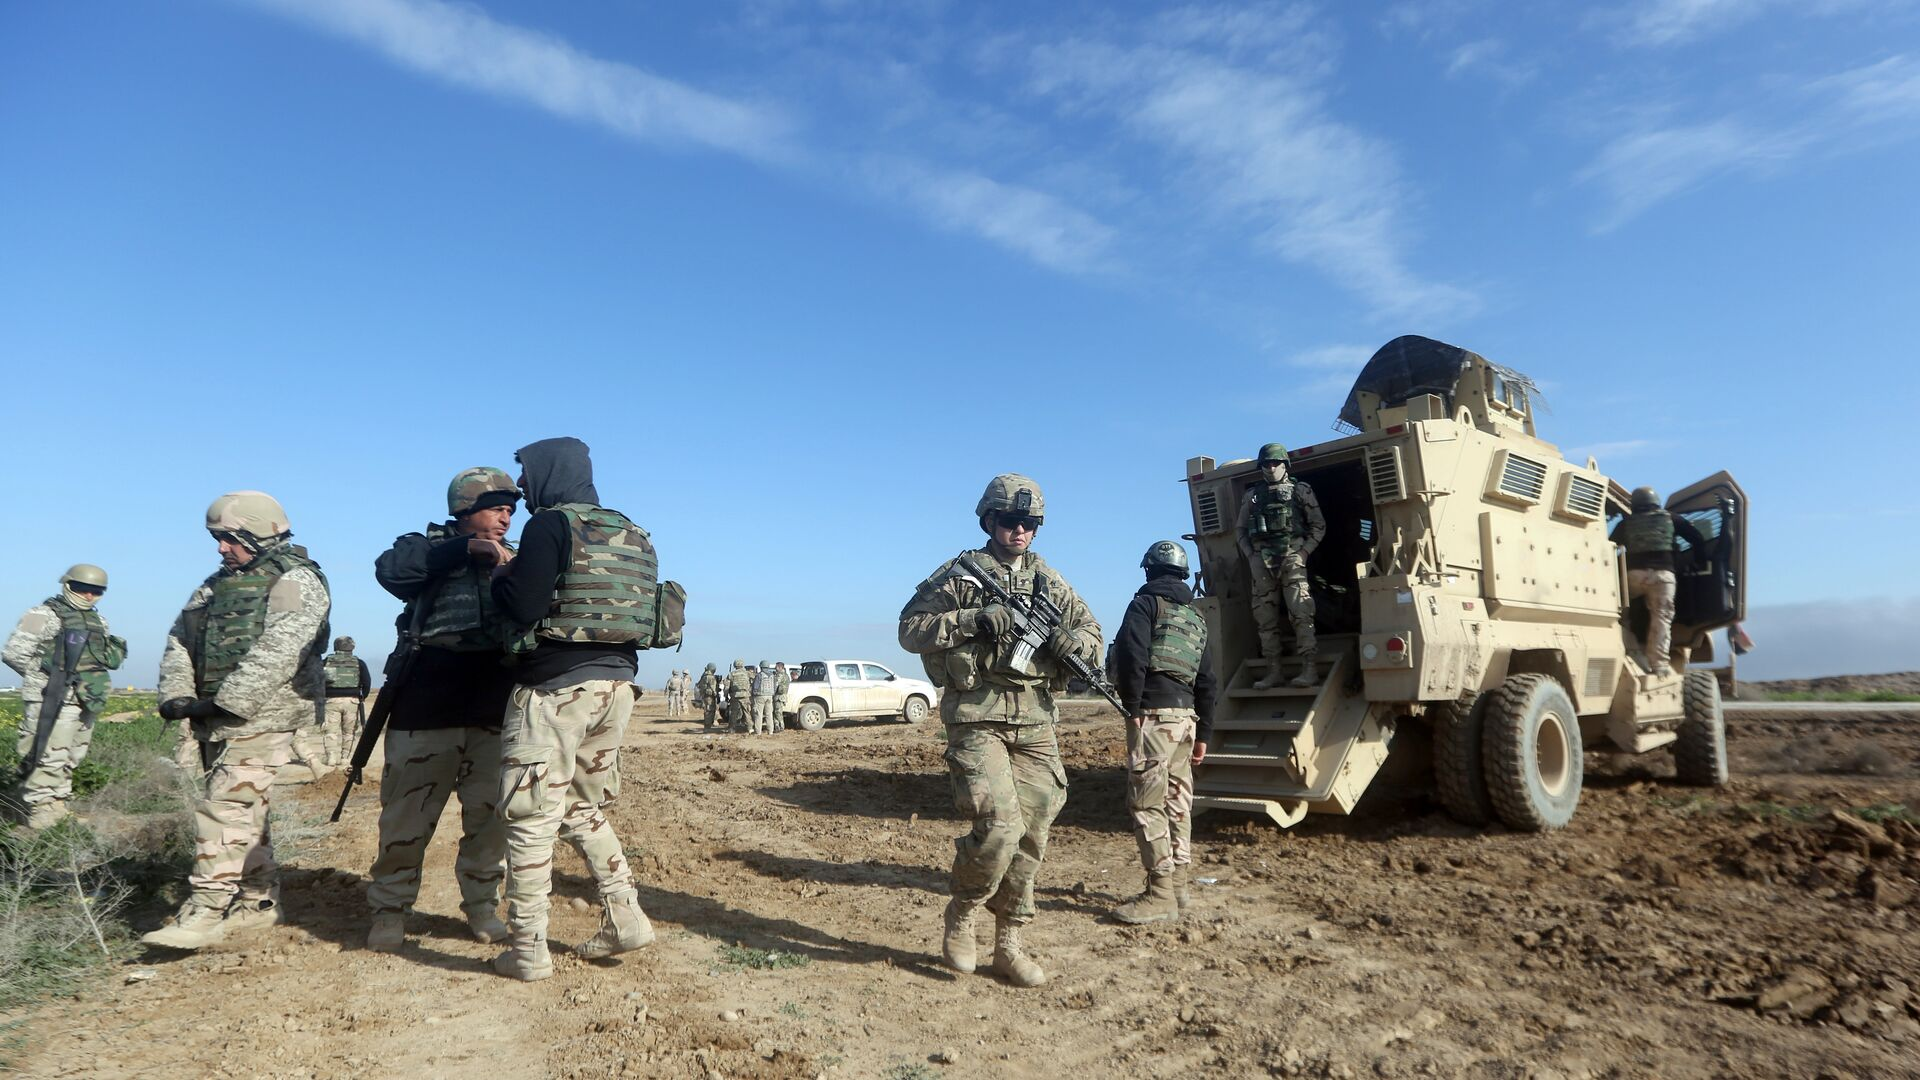 US soldiers monitor as they train Iraq's 72nd Brigade in a live-fire exercise in Basmaya base, southeast of the Iraqi capital, Baghdad, on January 27, 2016 - Sputnik International, 1920, 02.08.2021